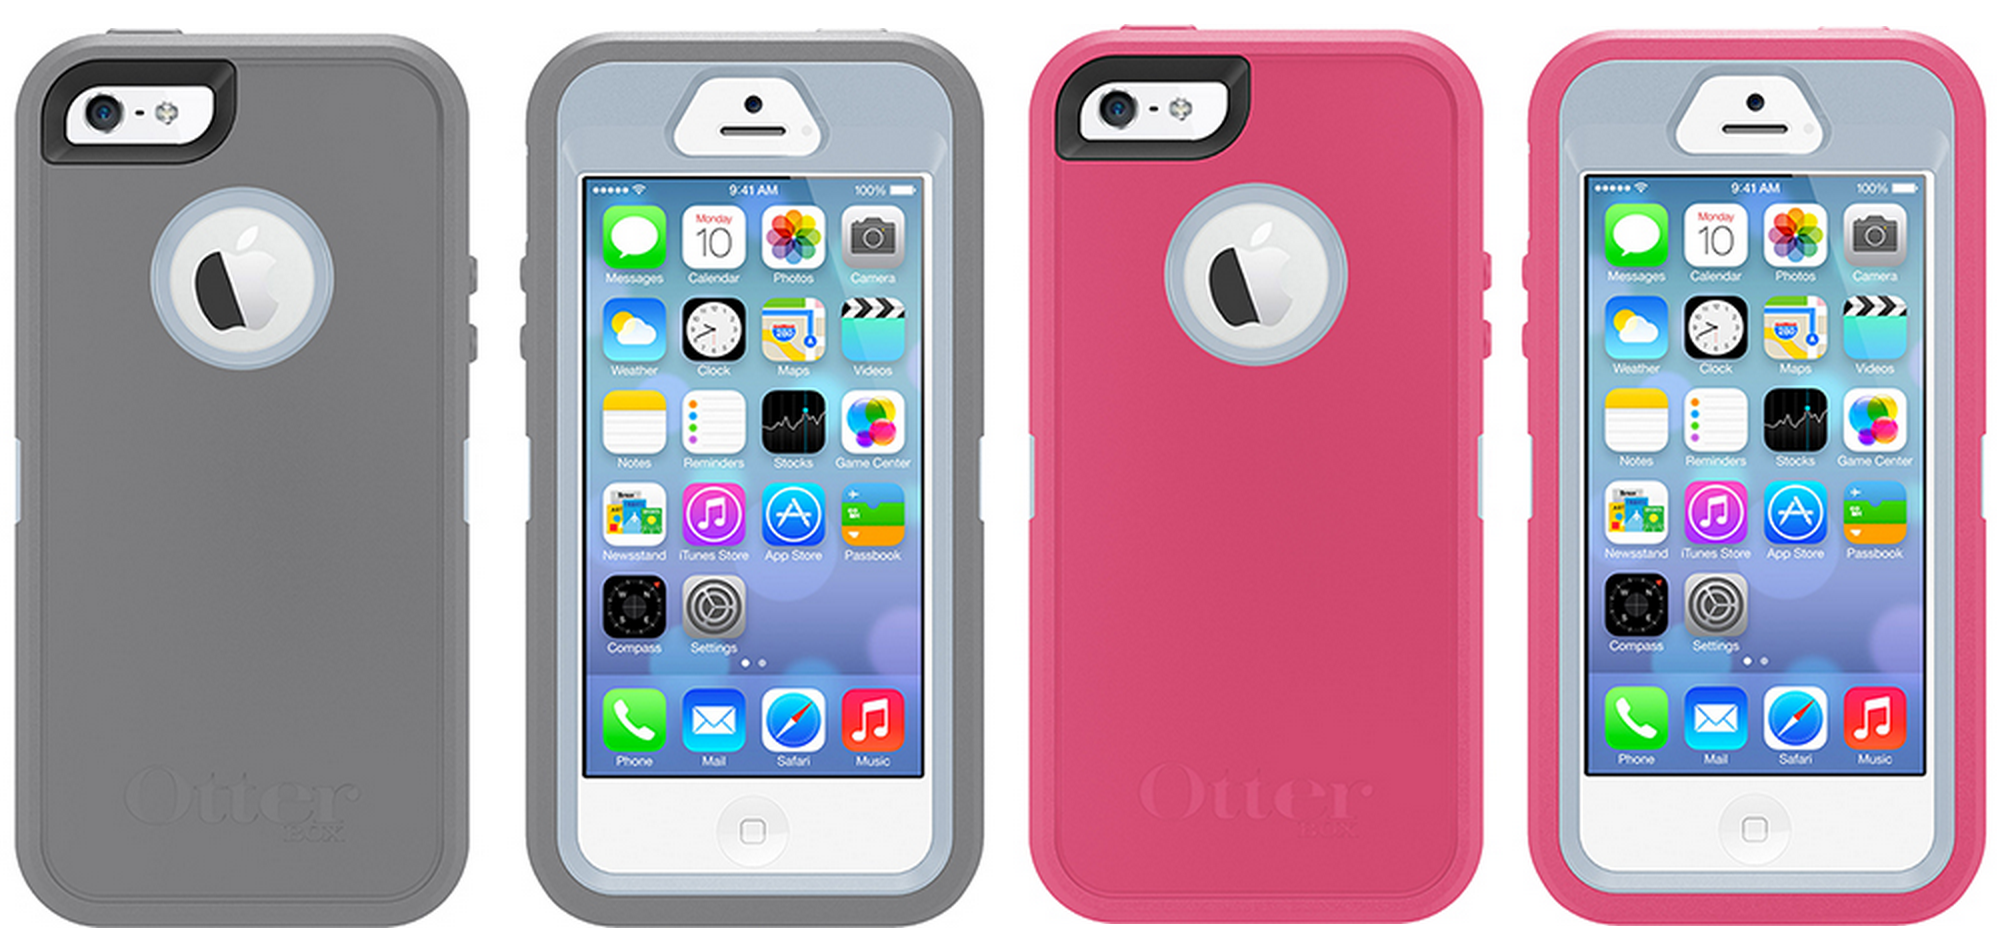 otterbox cases for iphone 5s the best iphone 5c and iphone 5s cases already available 4092